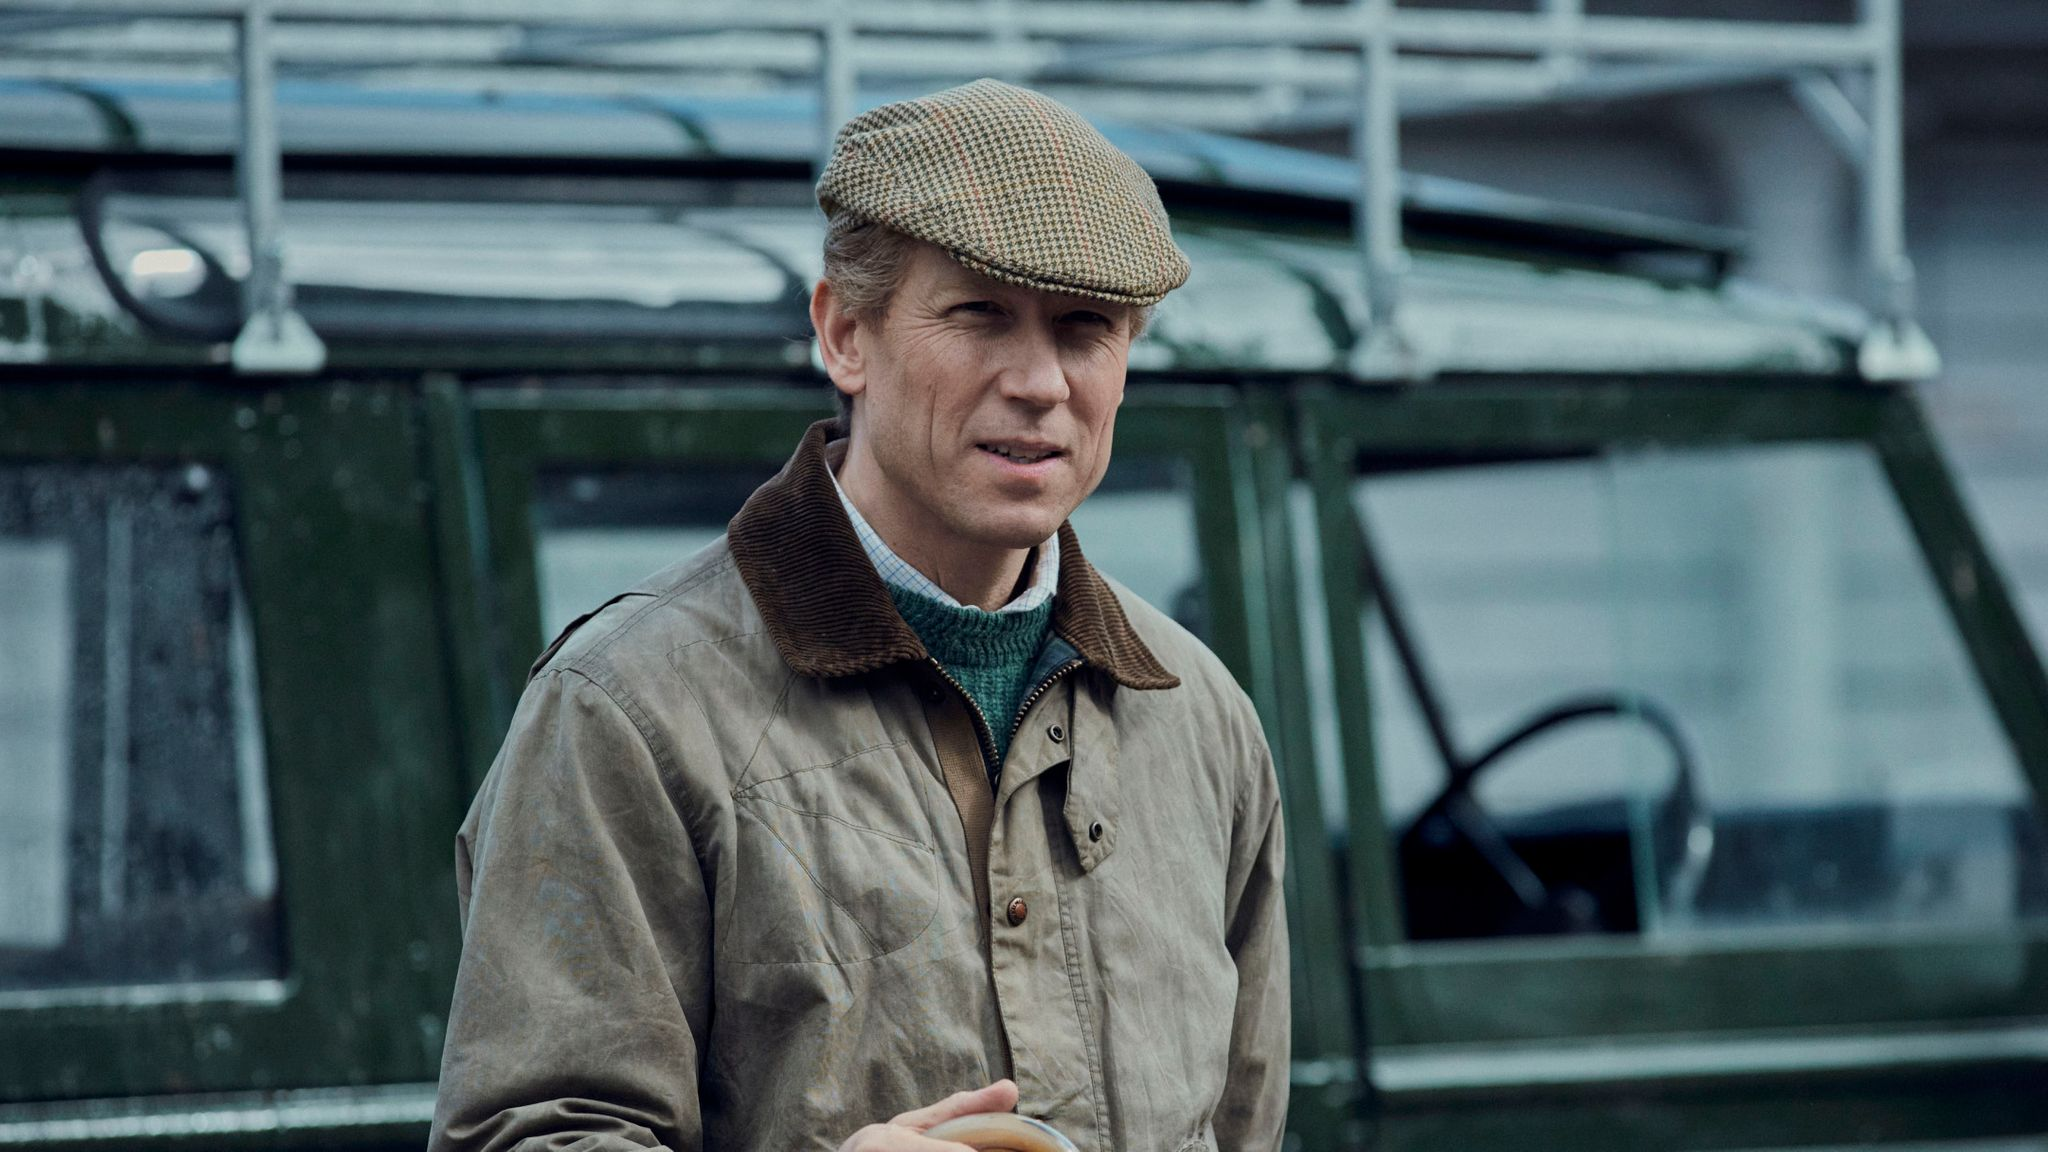 Tobias Menzies played Prince Philip in The Crown. Pic: Netflix/Sophie Mutevelian